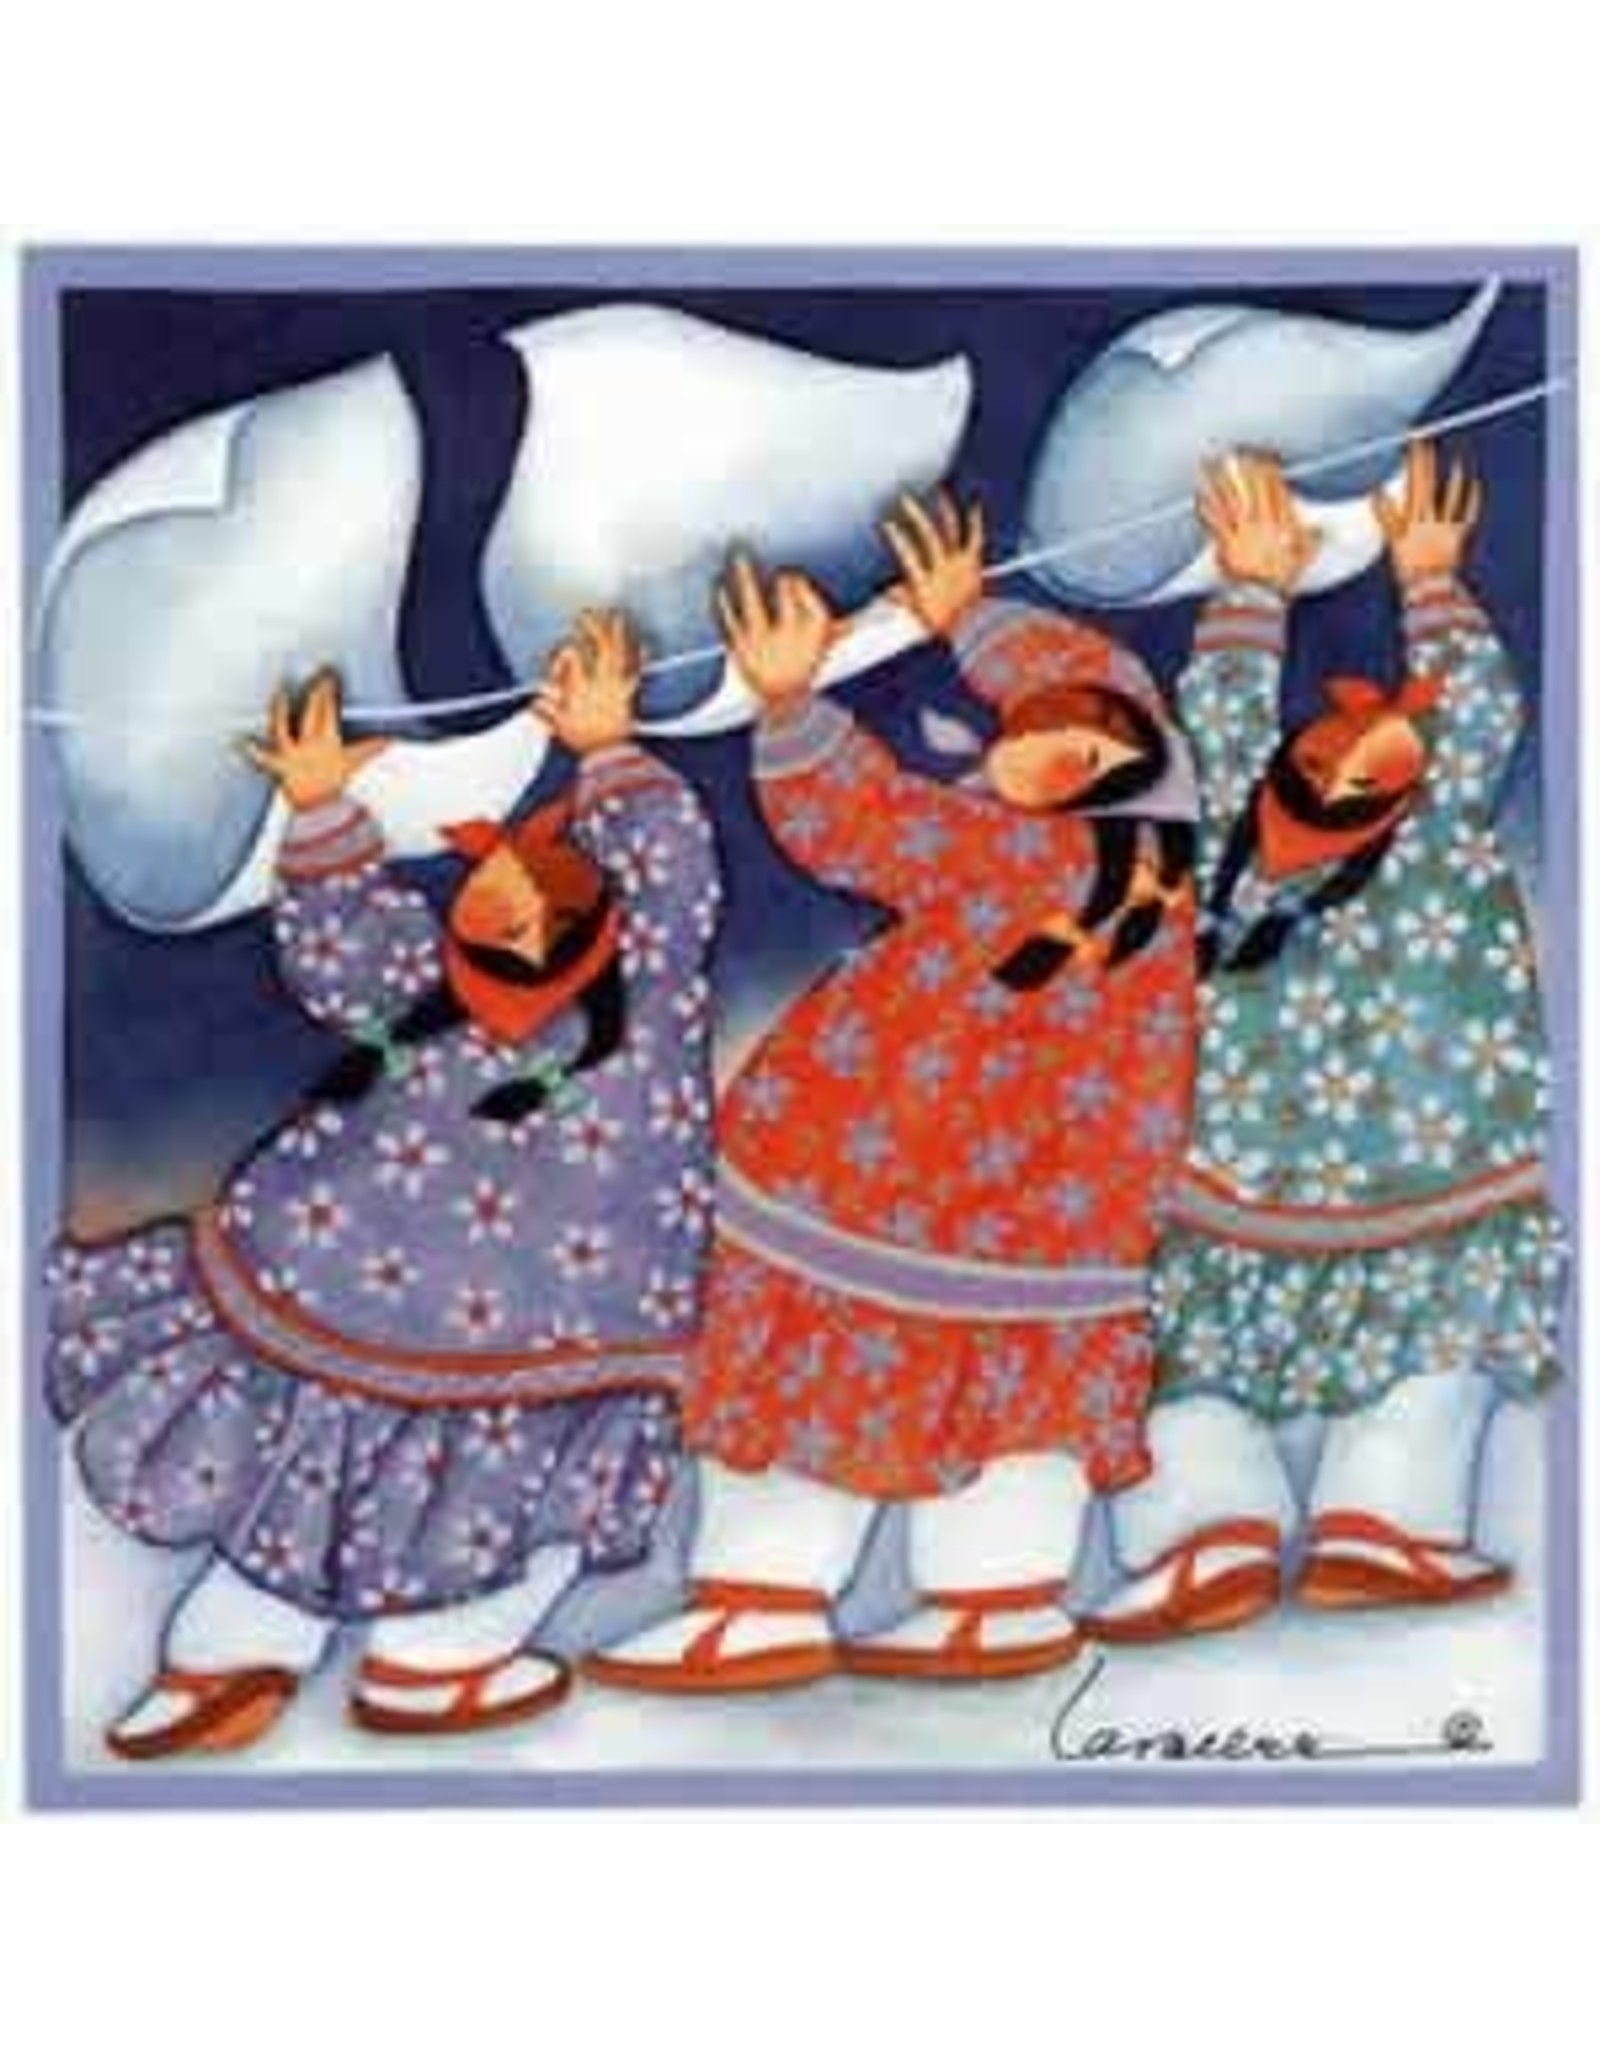 Barbara Lavallee Three Sheets to the Wind | Barbara Lavallee